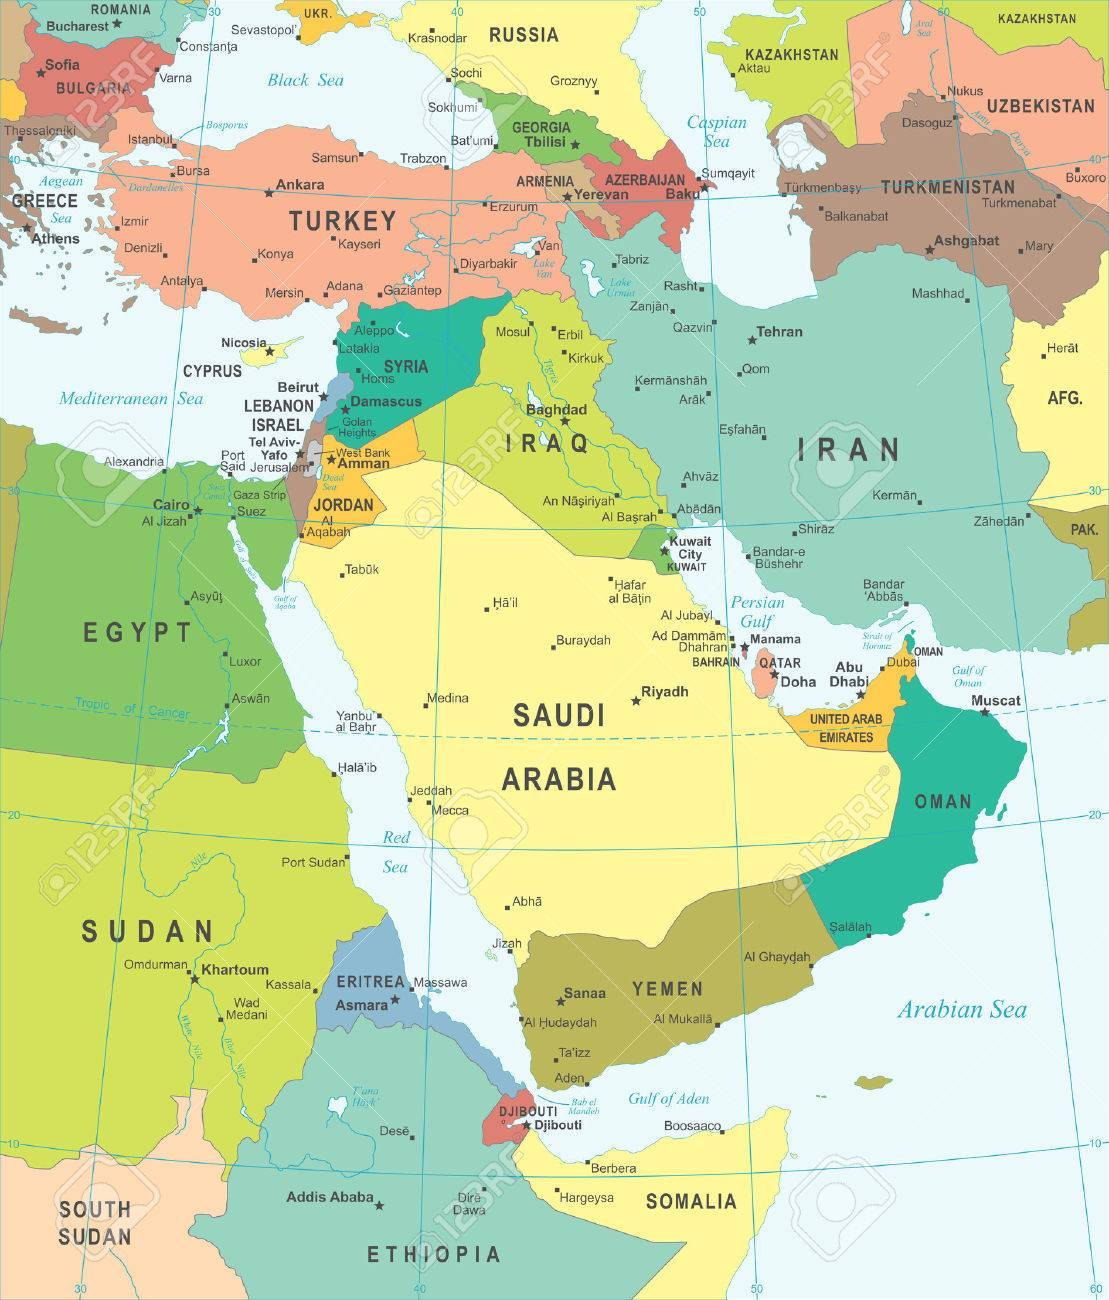 Middle East and Asia map - highly detailed vector illustration. - 48932499